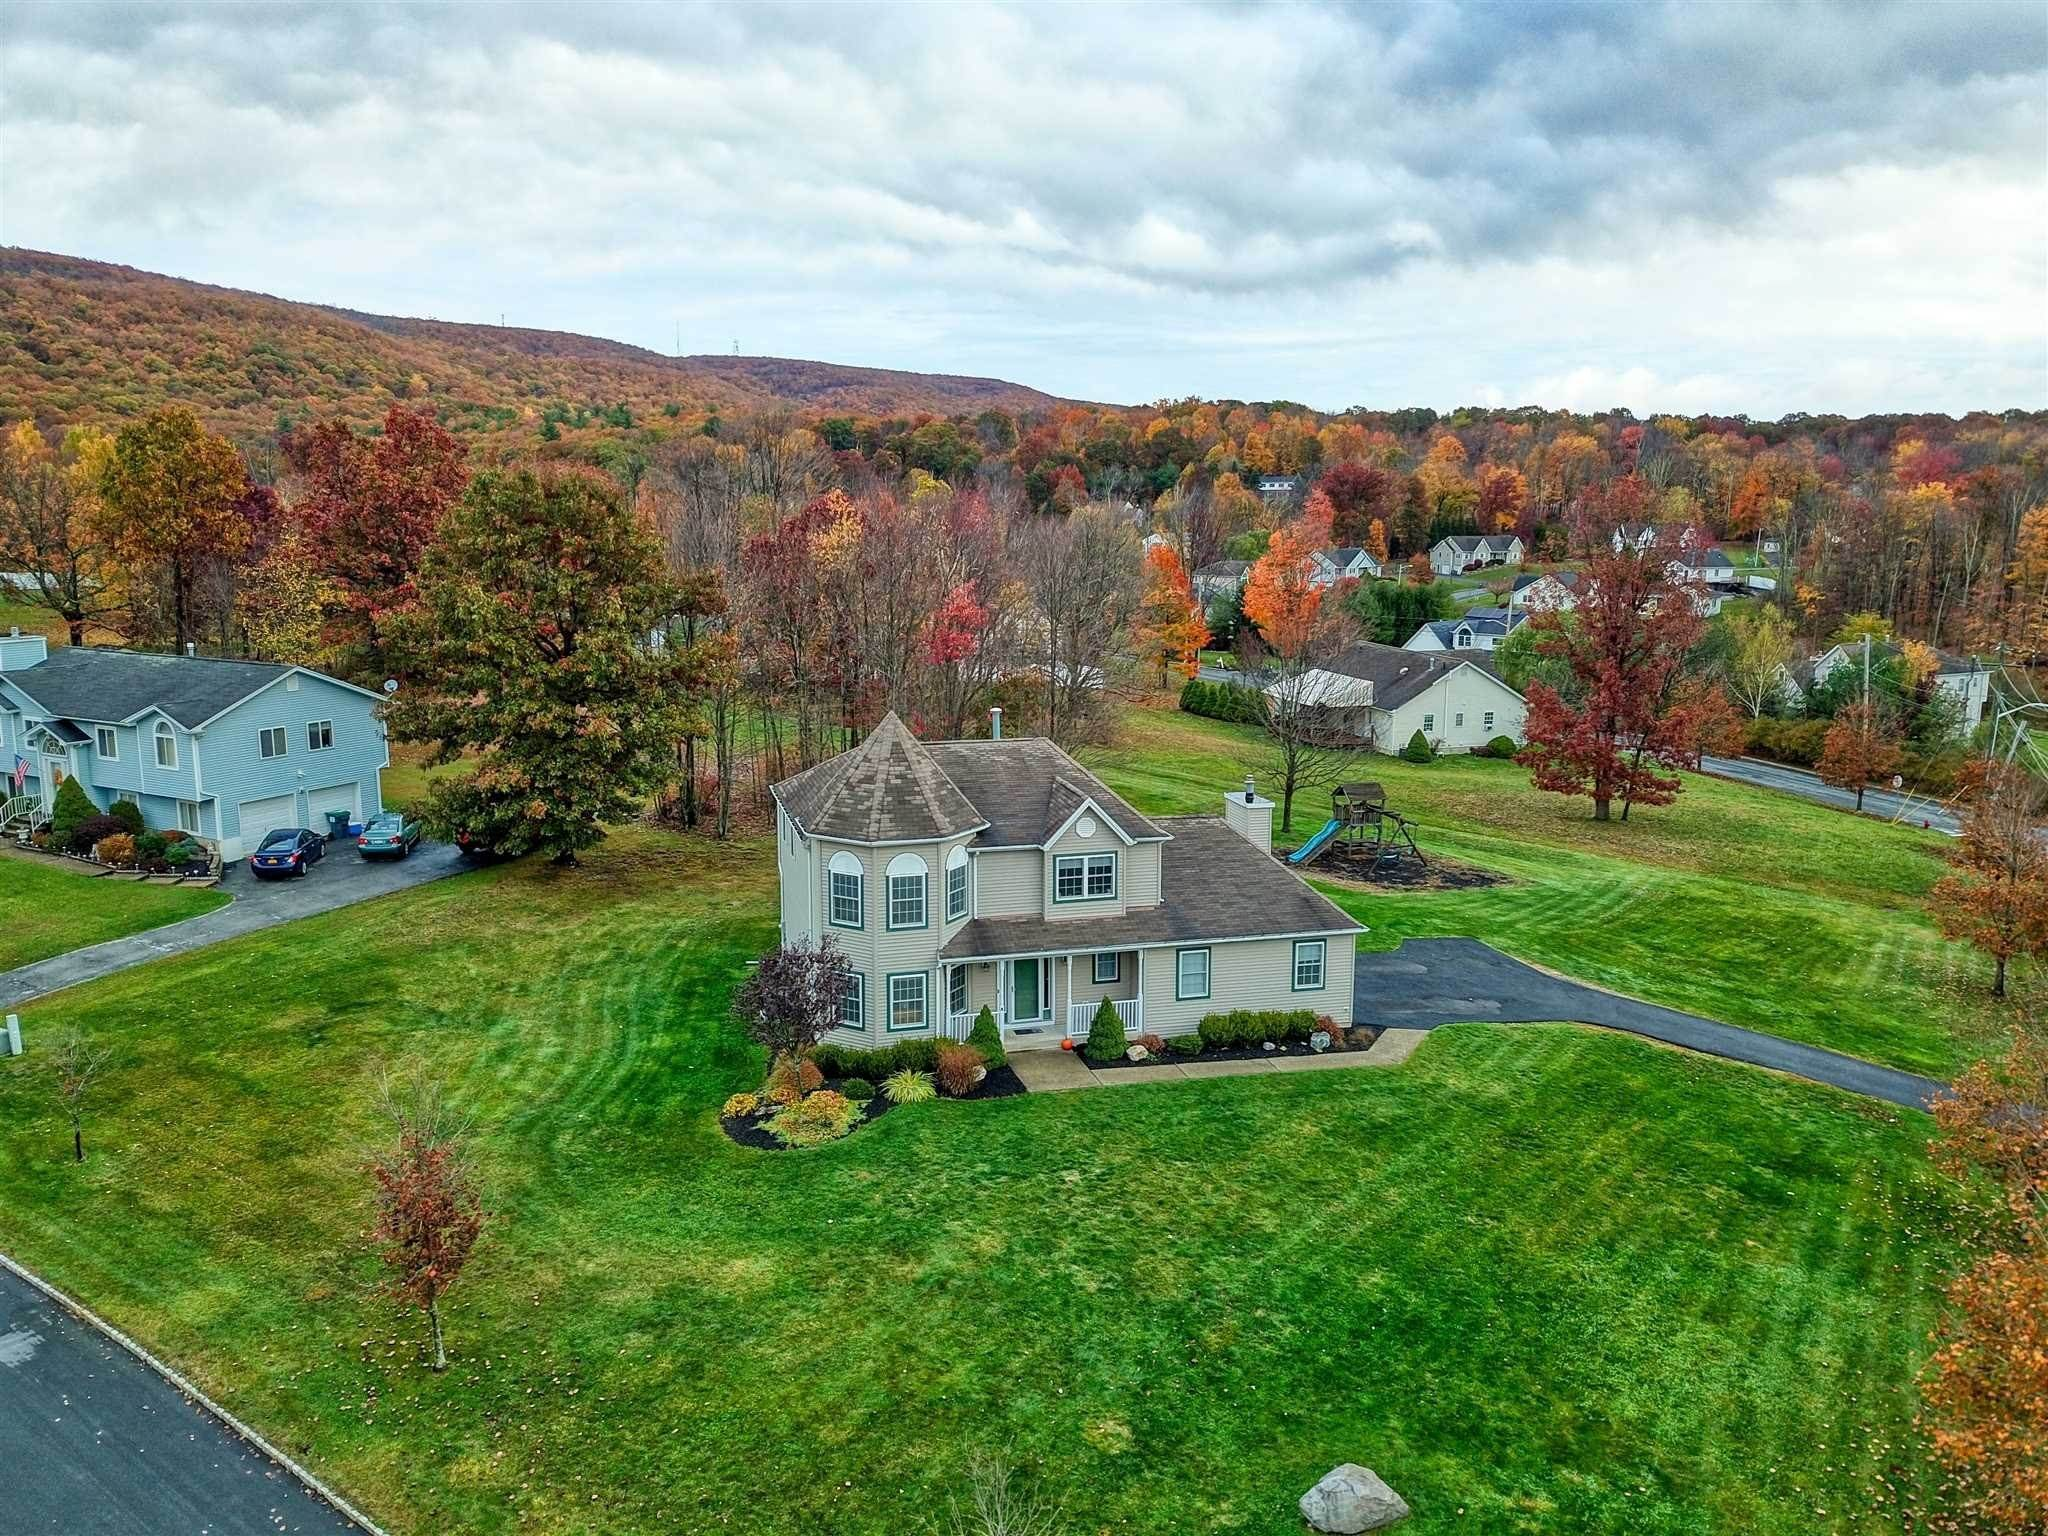 Single Family Homes for Sale at 2 SEQUOIA TRAIL Highland Mills, New York 10930 United States